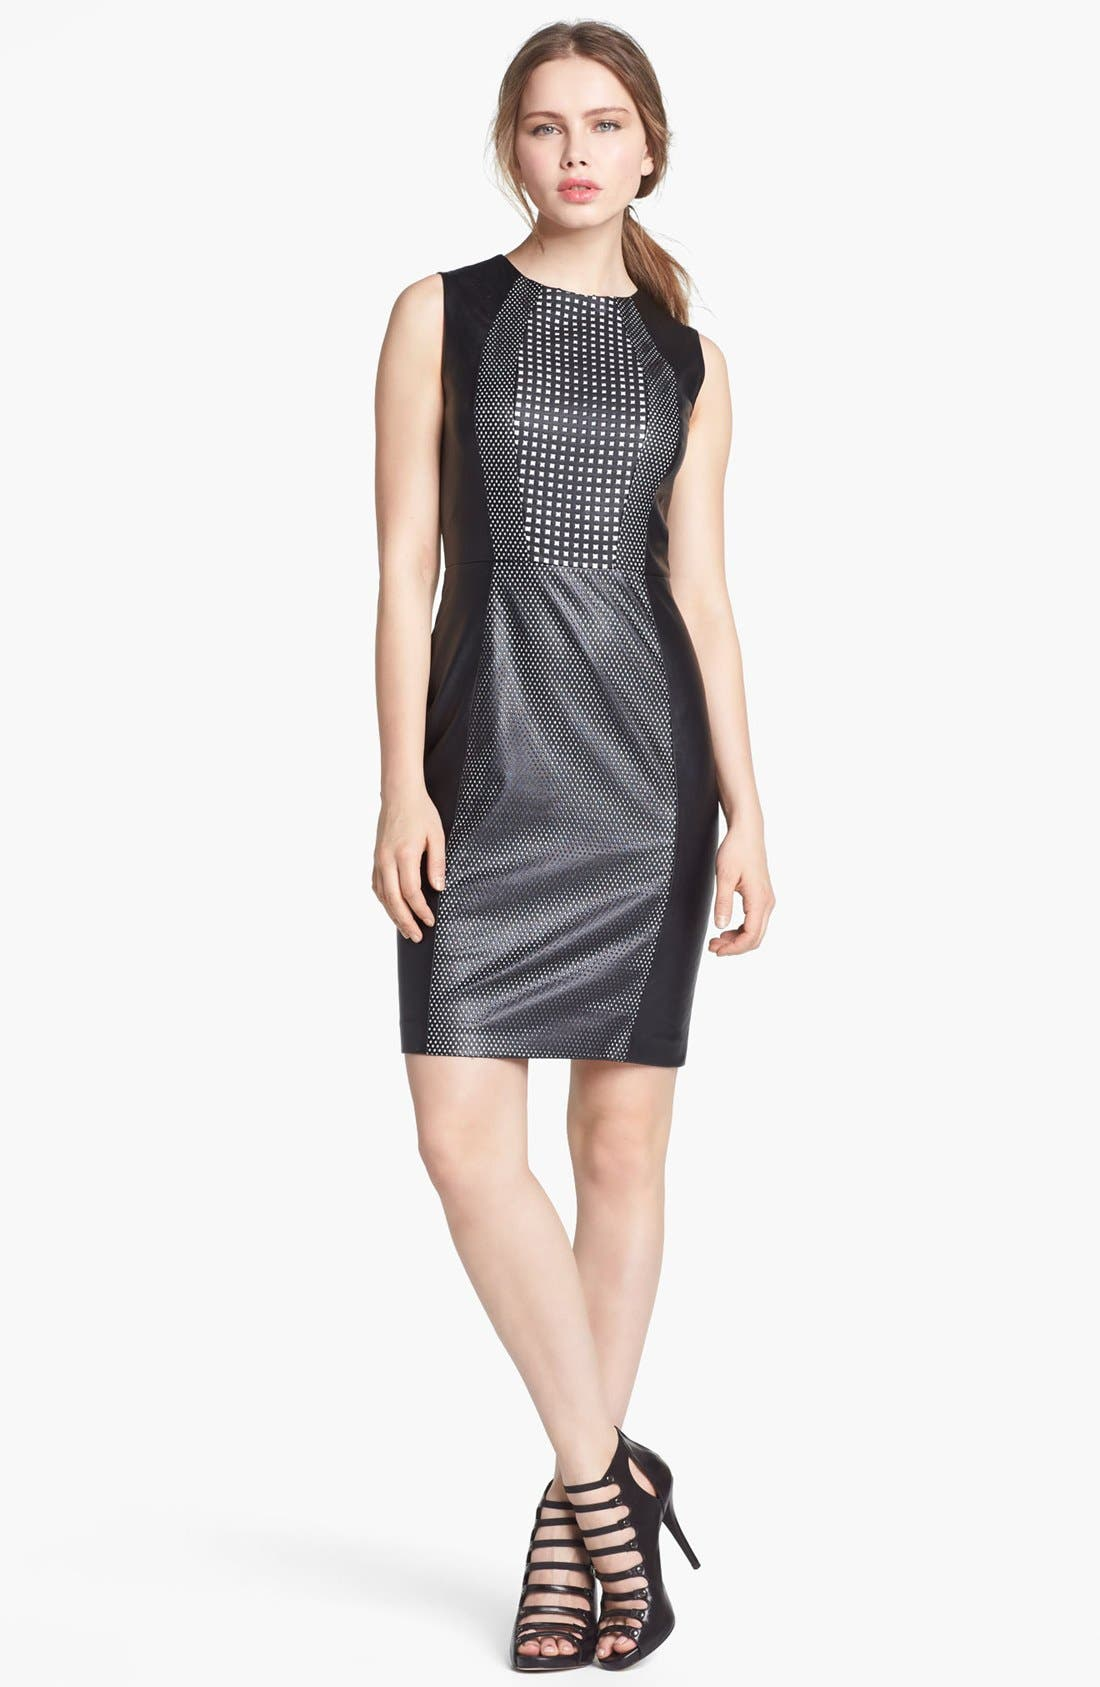 Alternate Image 1 Selected - Vince Camuto Perforated Faux Leather Sheath Dress